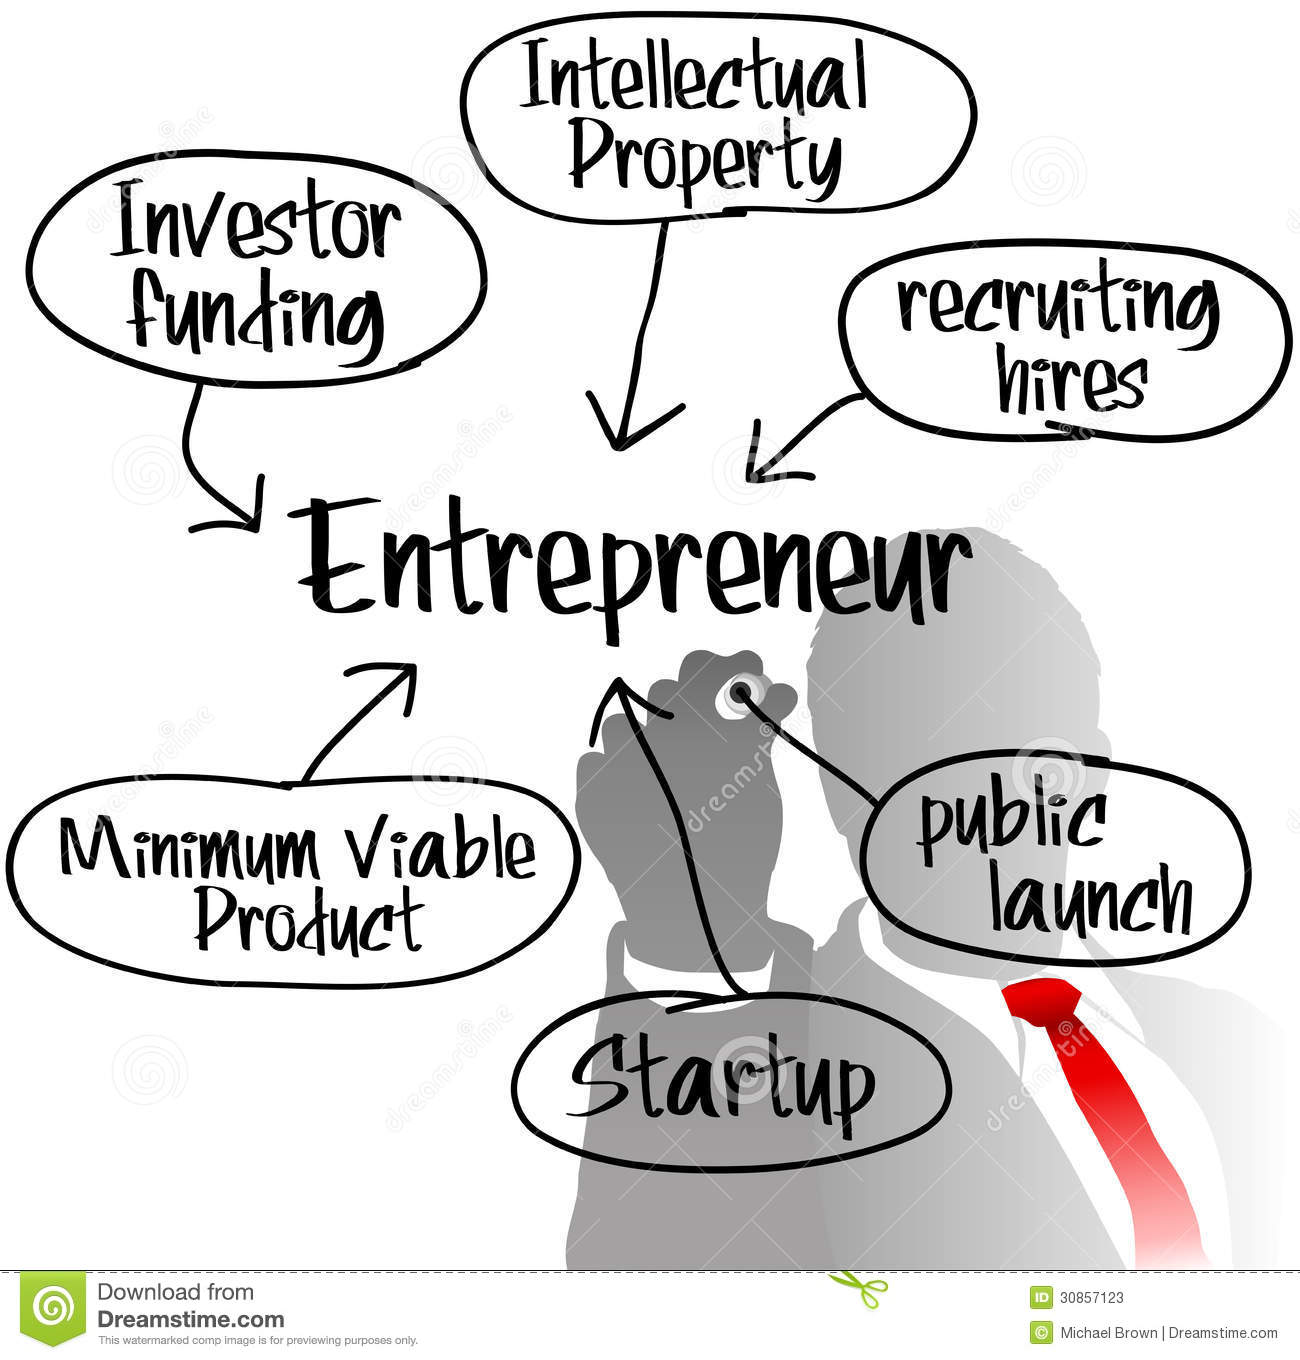 Entrepreneur Drawing Startup Business Plan Stock Photos - Image ...